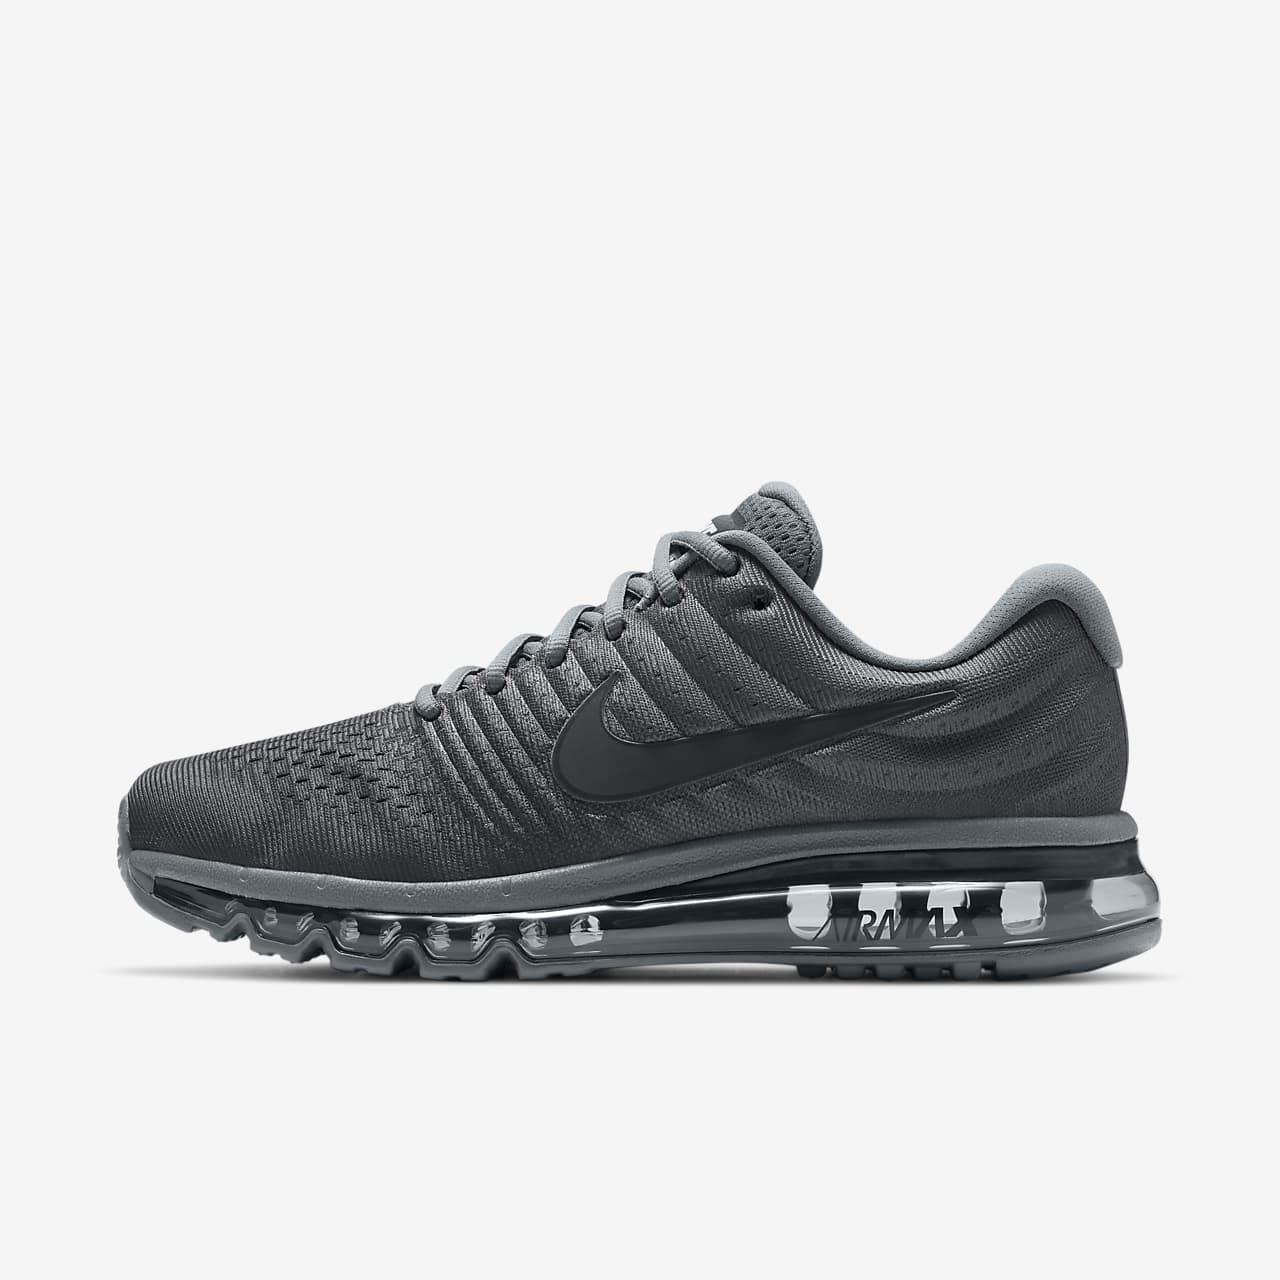 7679697bef41 Nike Air Max 2017 Men s Shoe. Nike.com